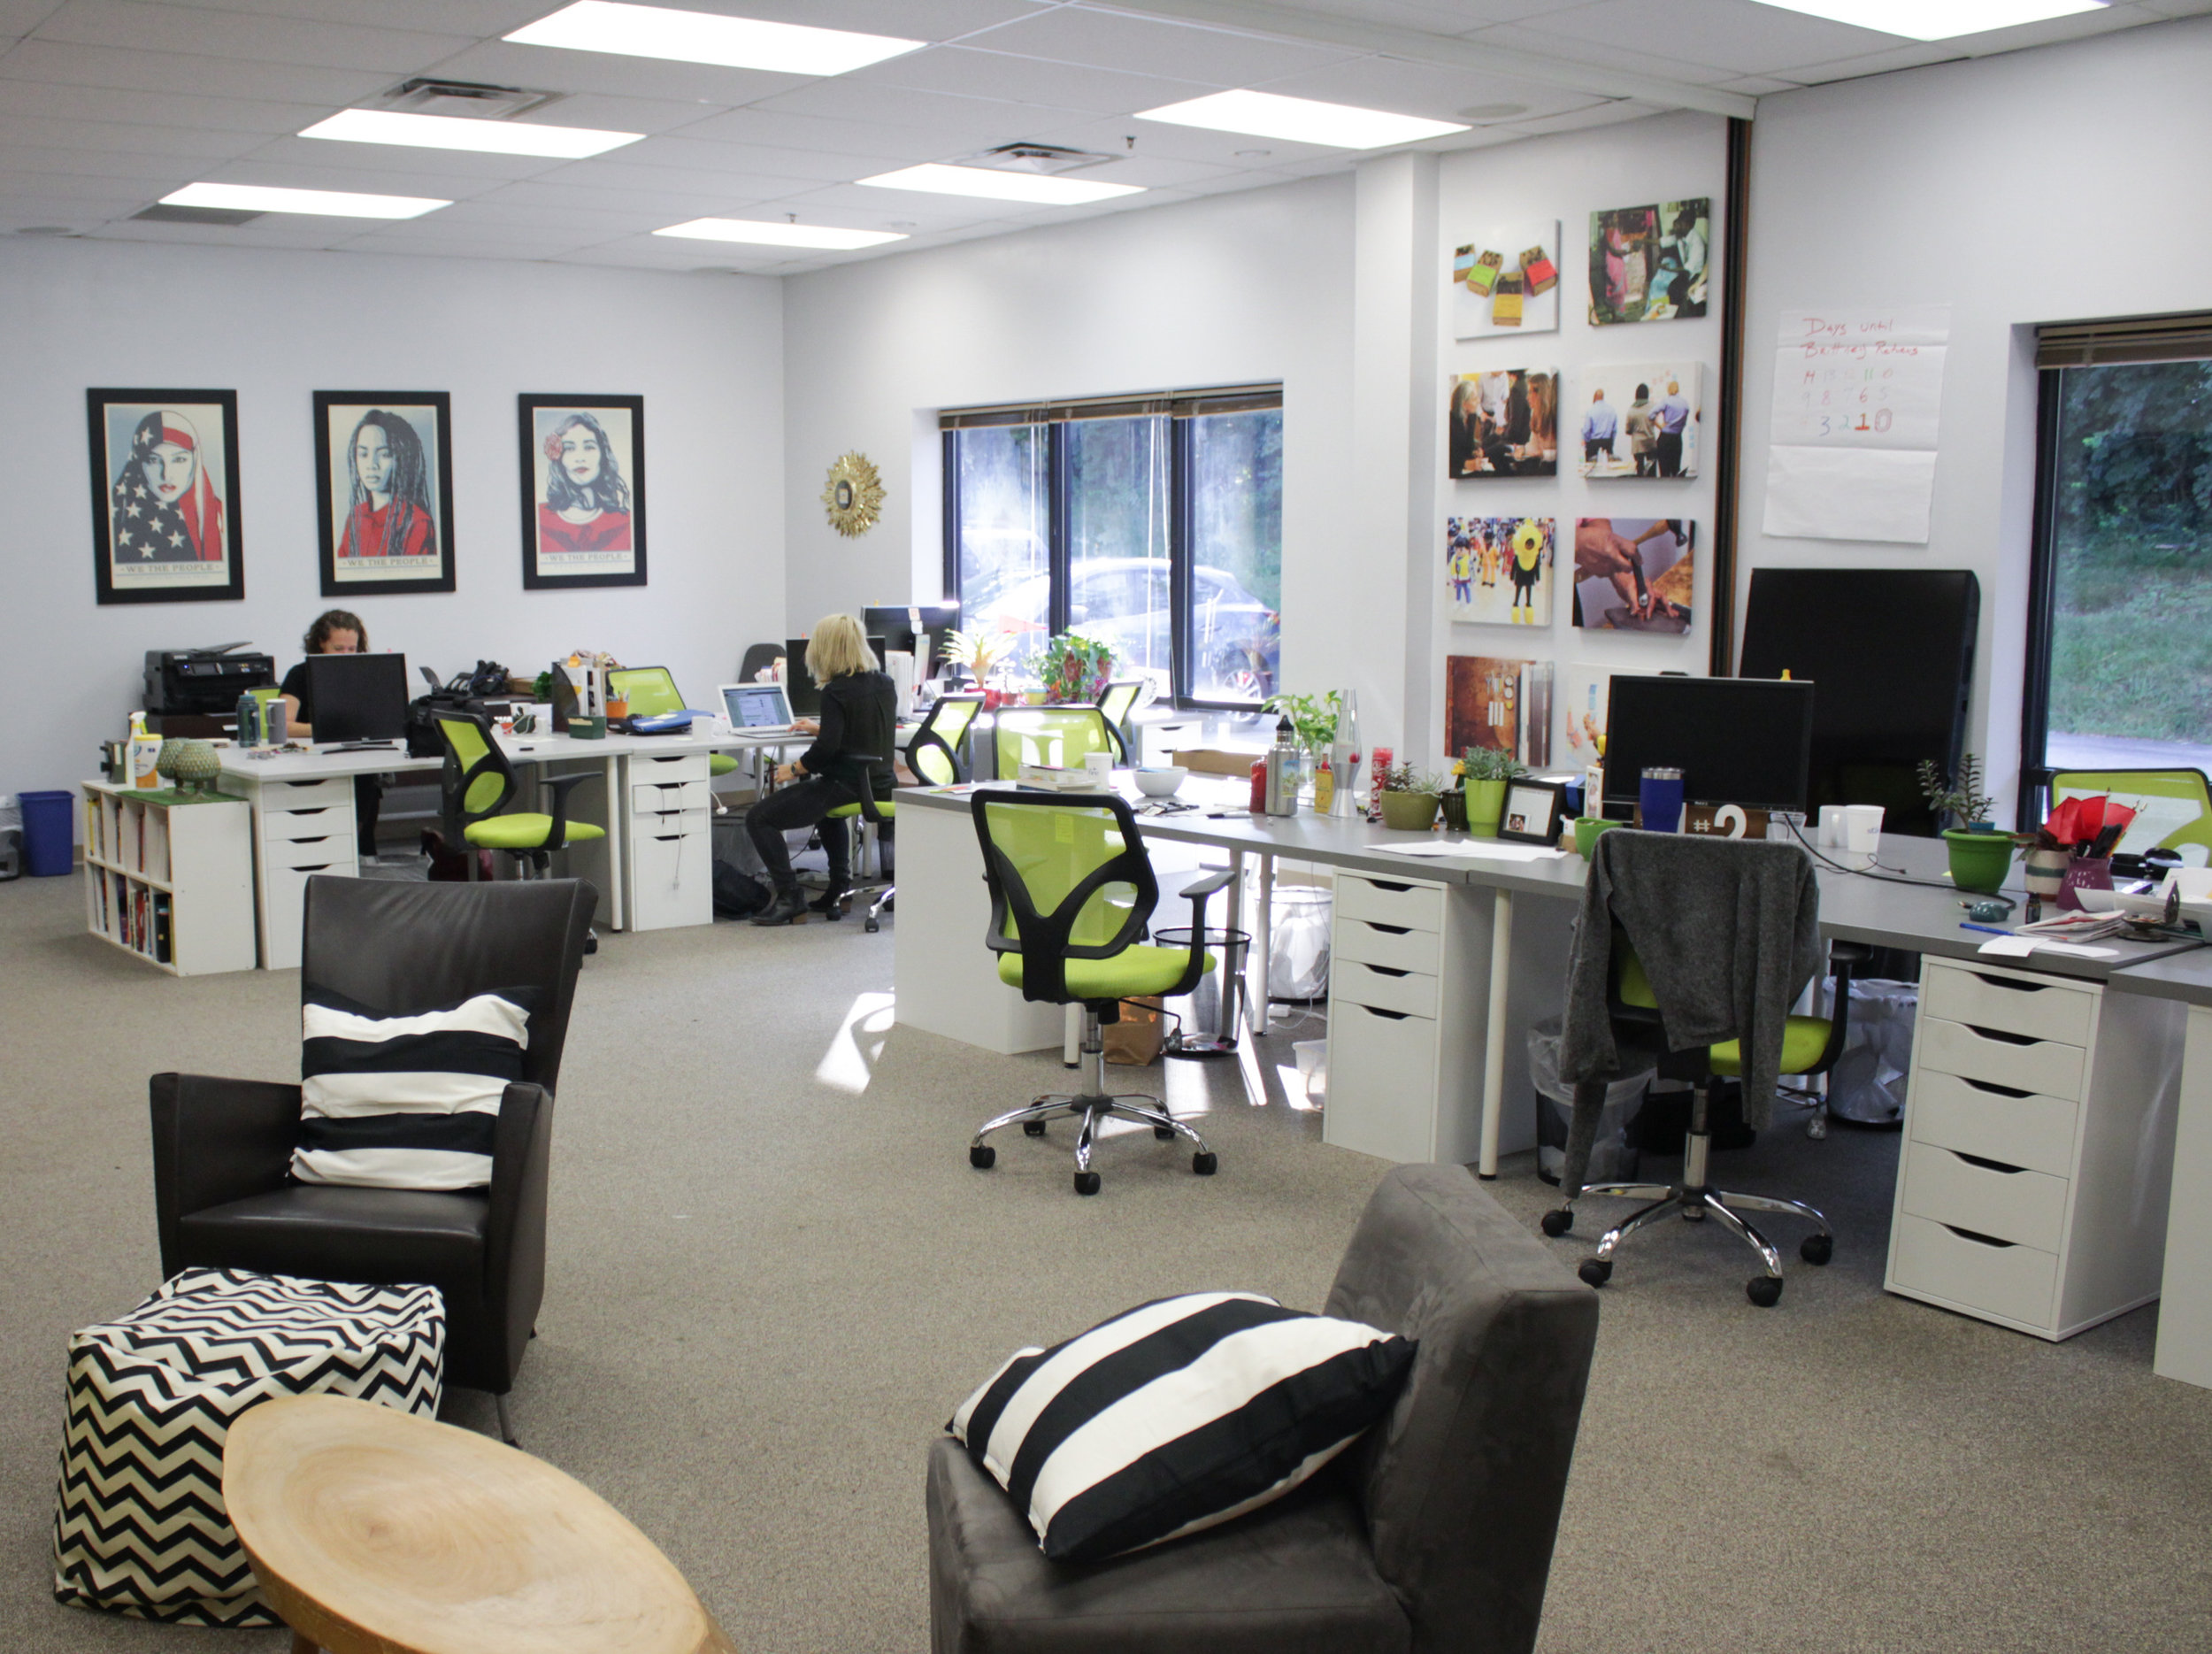 Design Impact's offices at Starfire